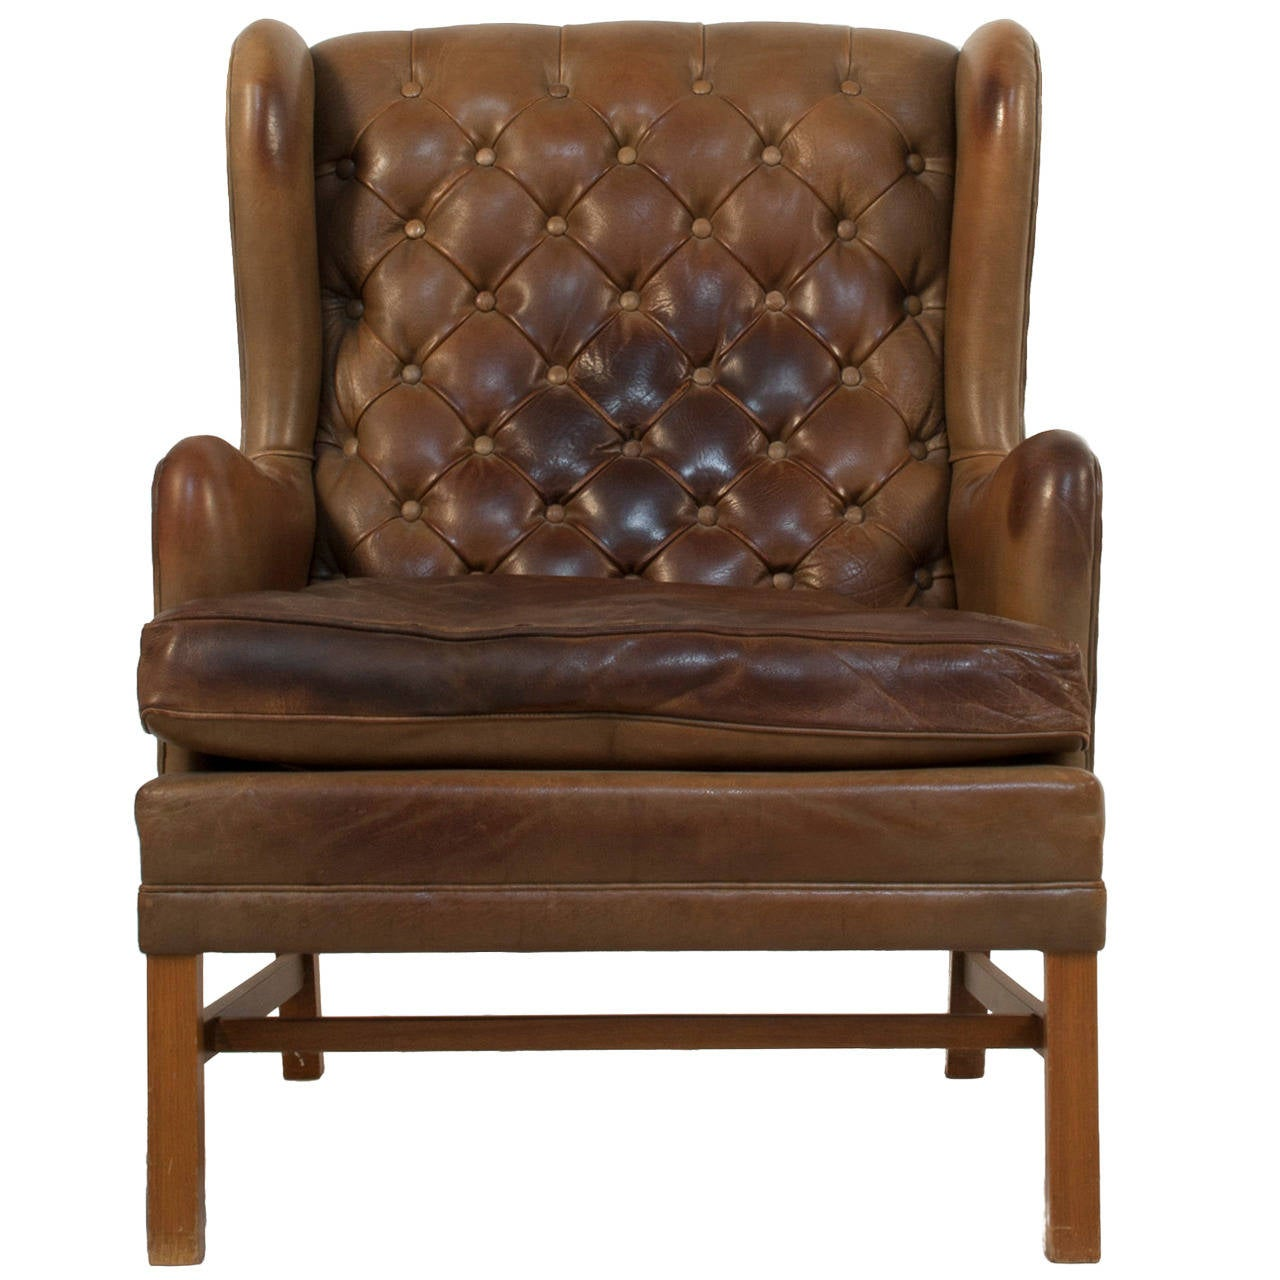 tufted leather wingback chair best outdoor rocking for sale at 1stdibs